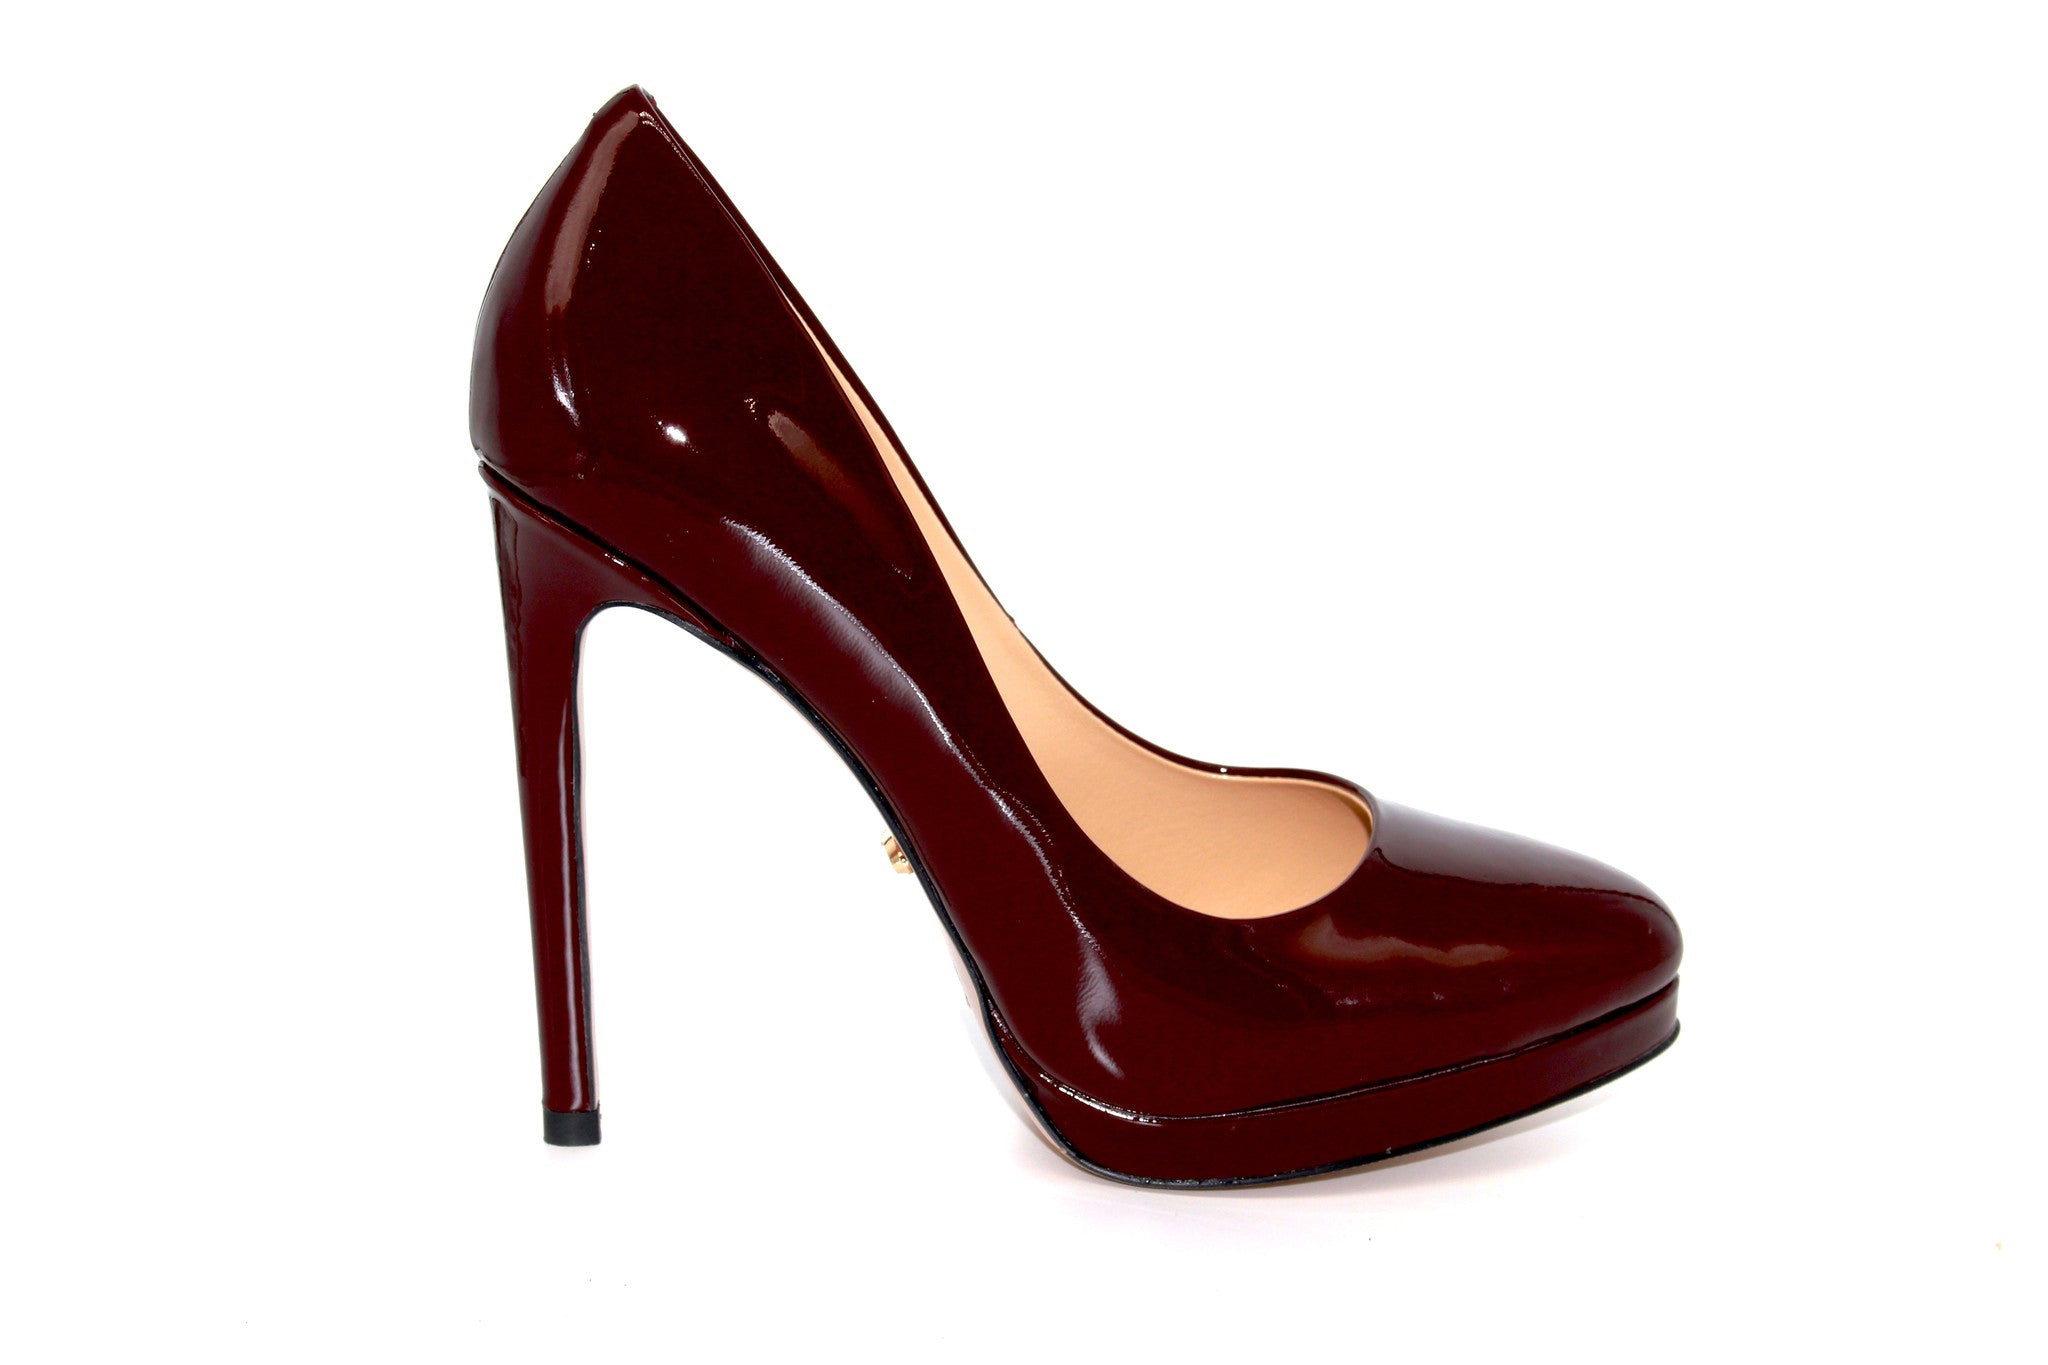 4.5 Inch Heels - Burgundy Patent Leather Pumps - Angelina Voloshina - AV  Heels - 1 ...